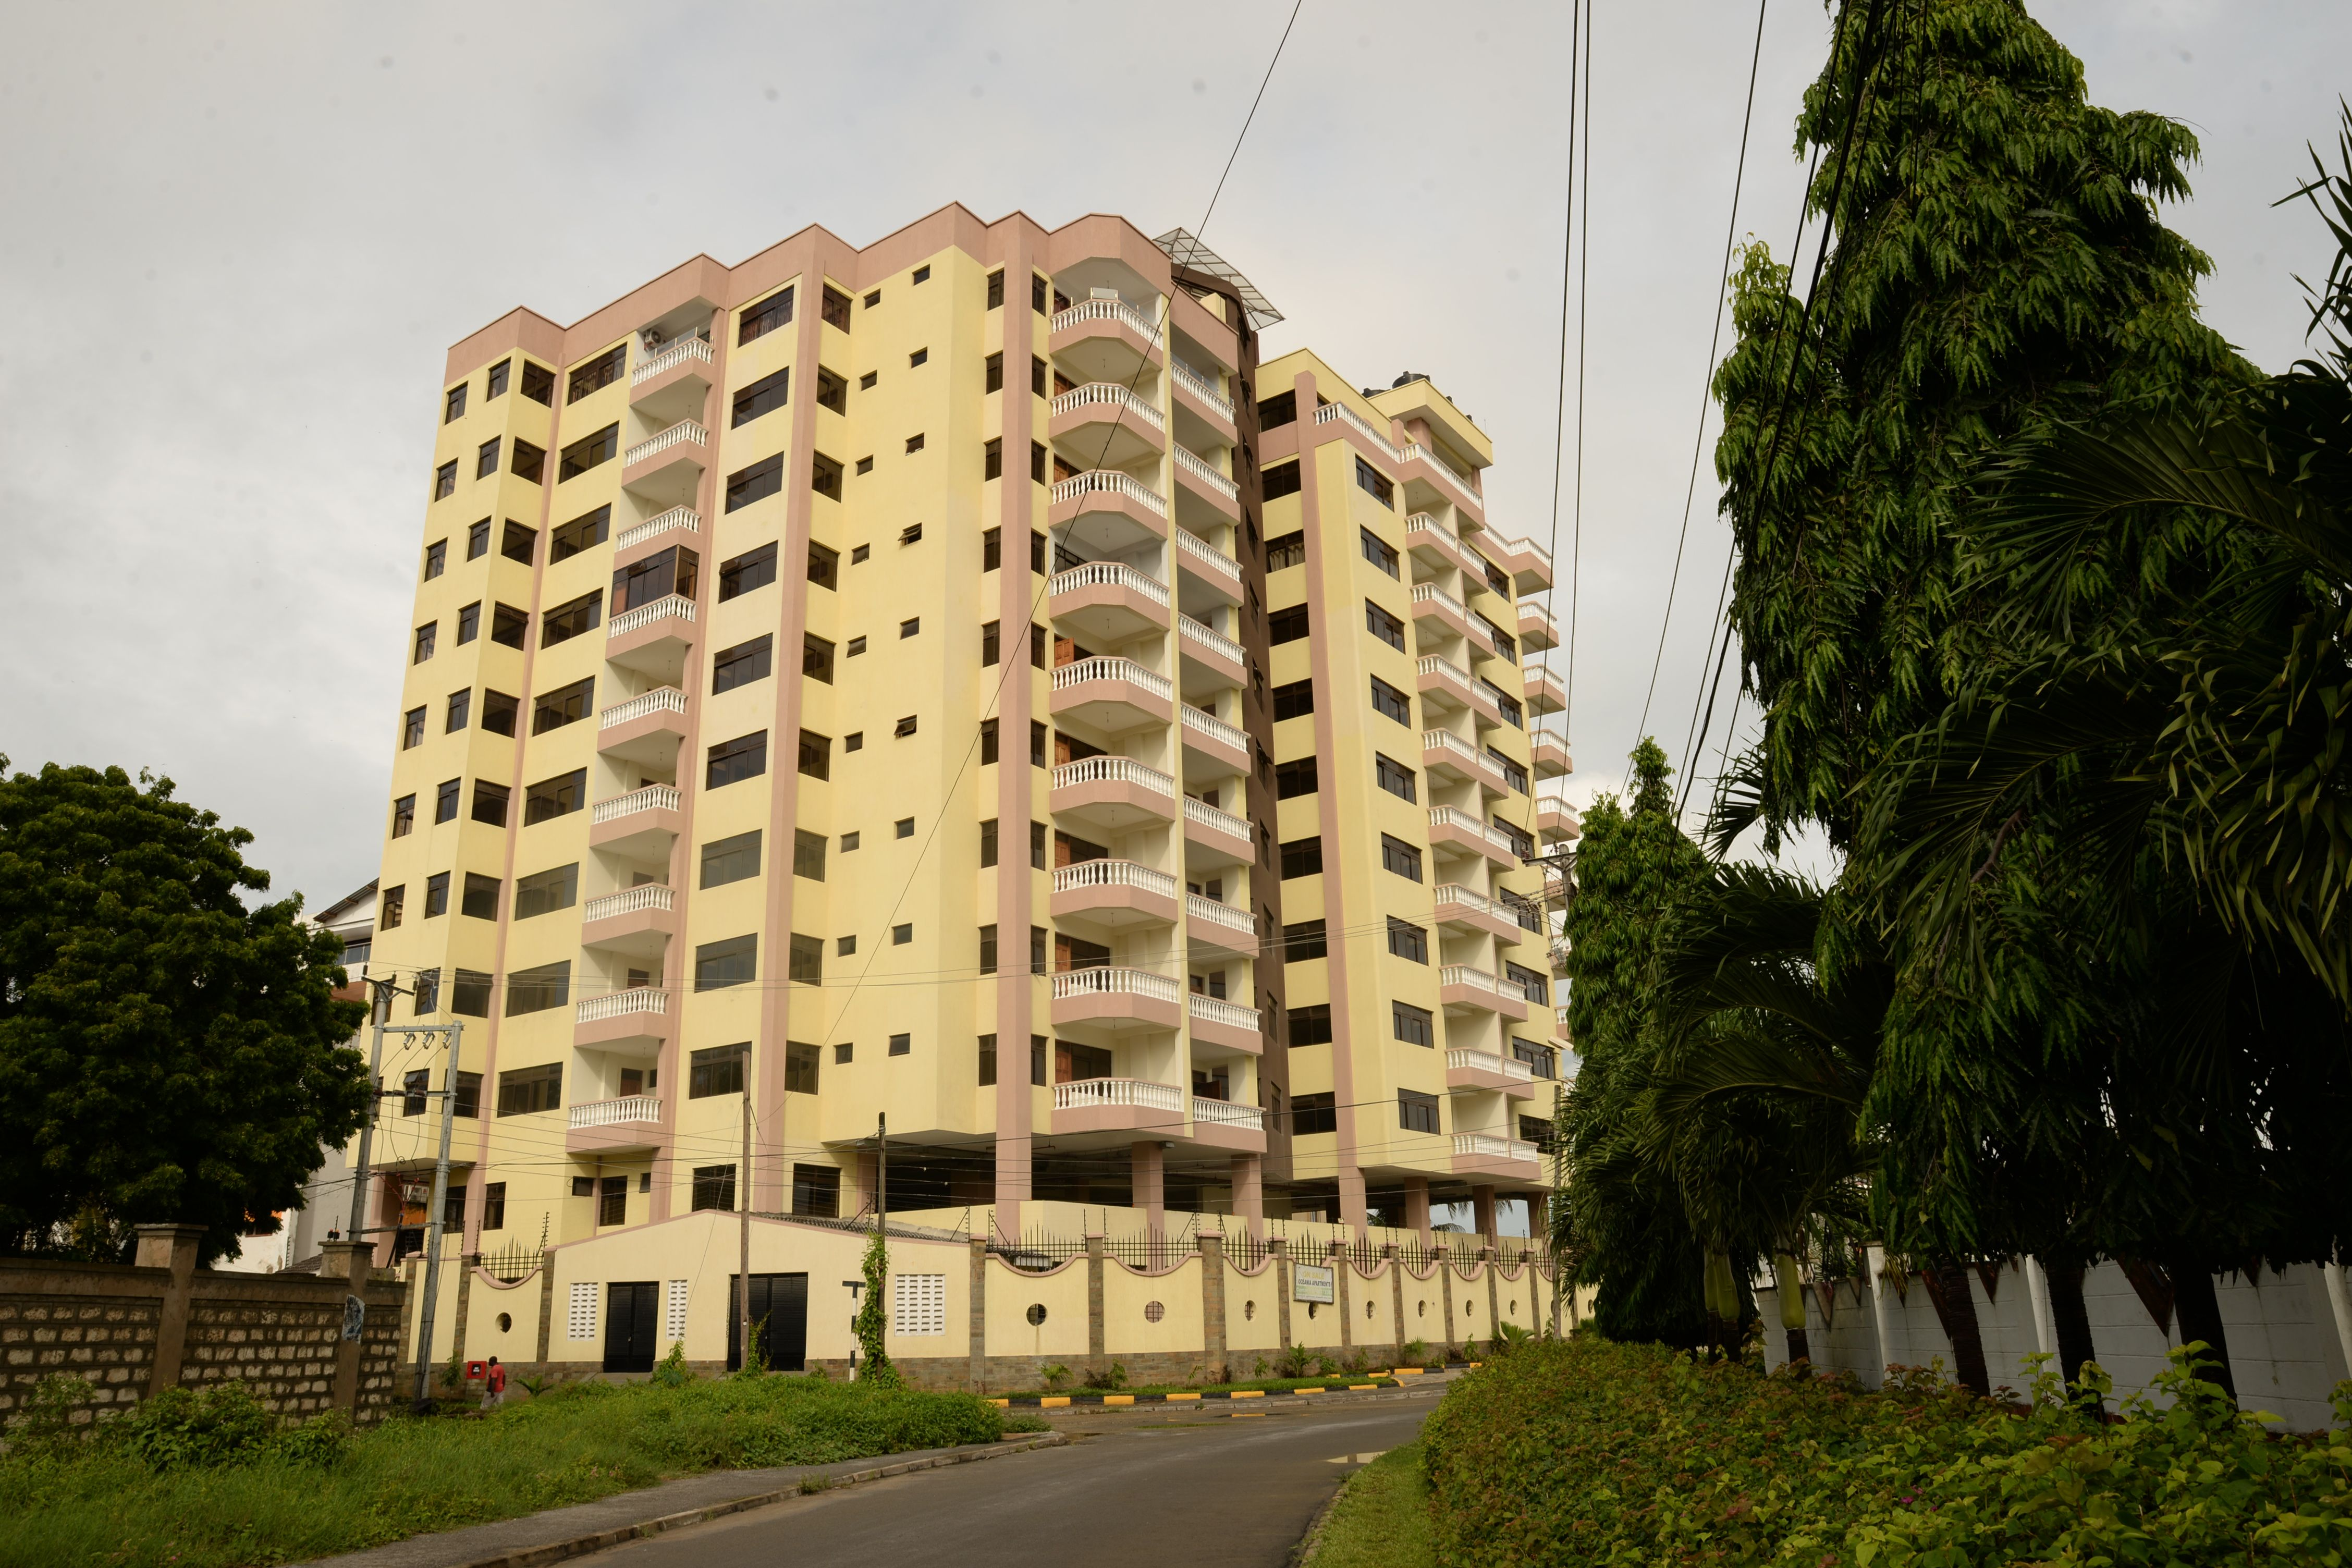 Oceania Apartments 3 Bedroom All Ensuite For Sale In Kizingo Mombasa Real Estate Development Projects Ensuite Mombasa